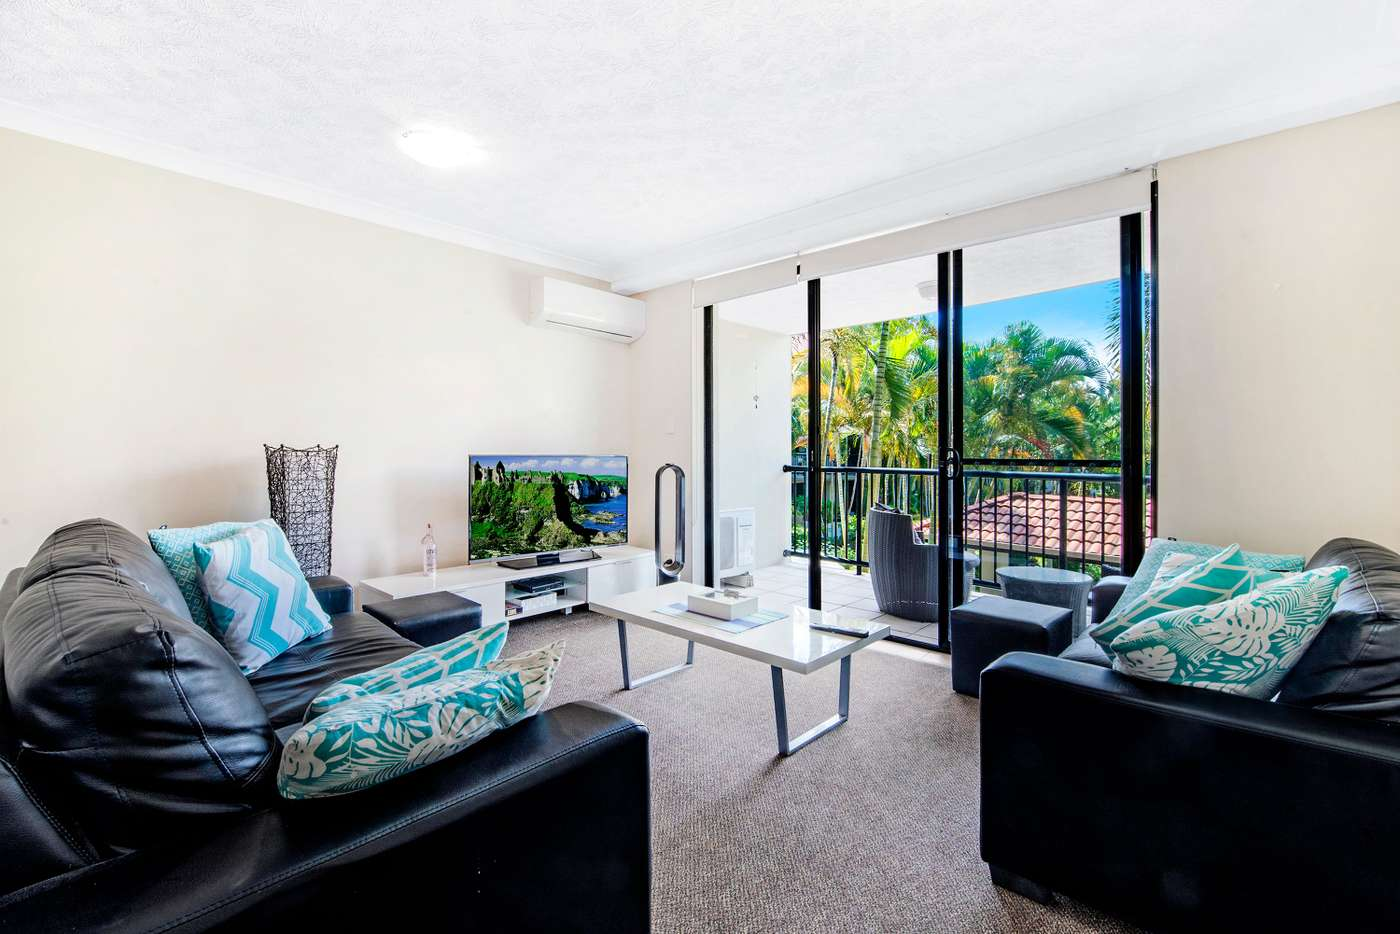 Main view of Homely apartment listing, 51/14-16 Markeri Street, Mermaid Beach, QLD 4218